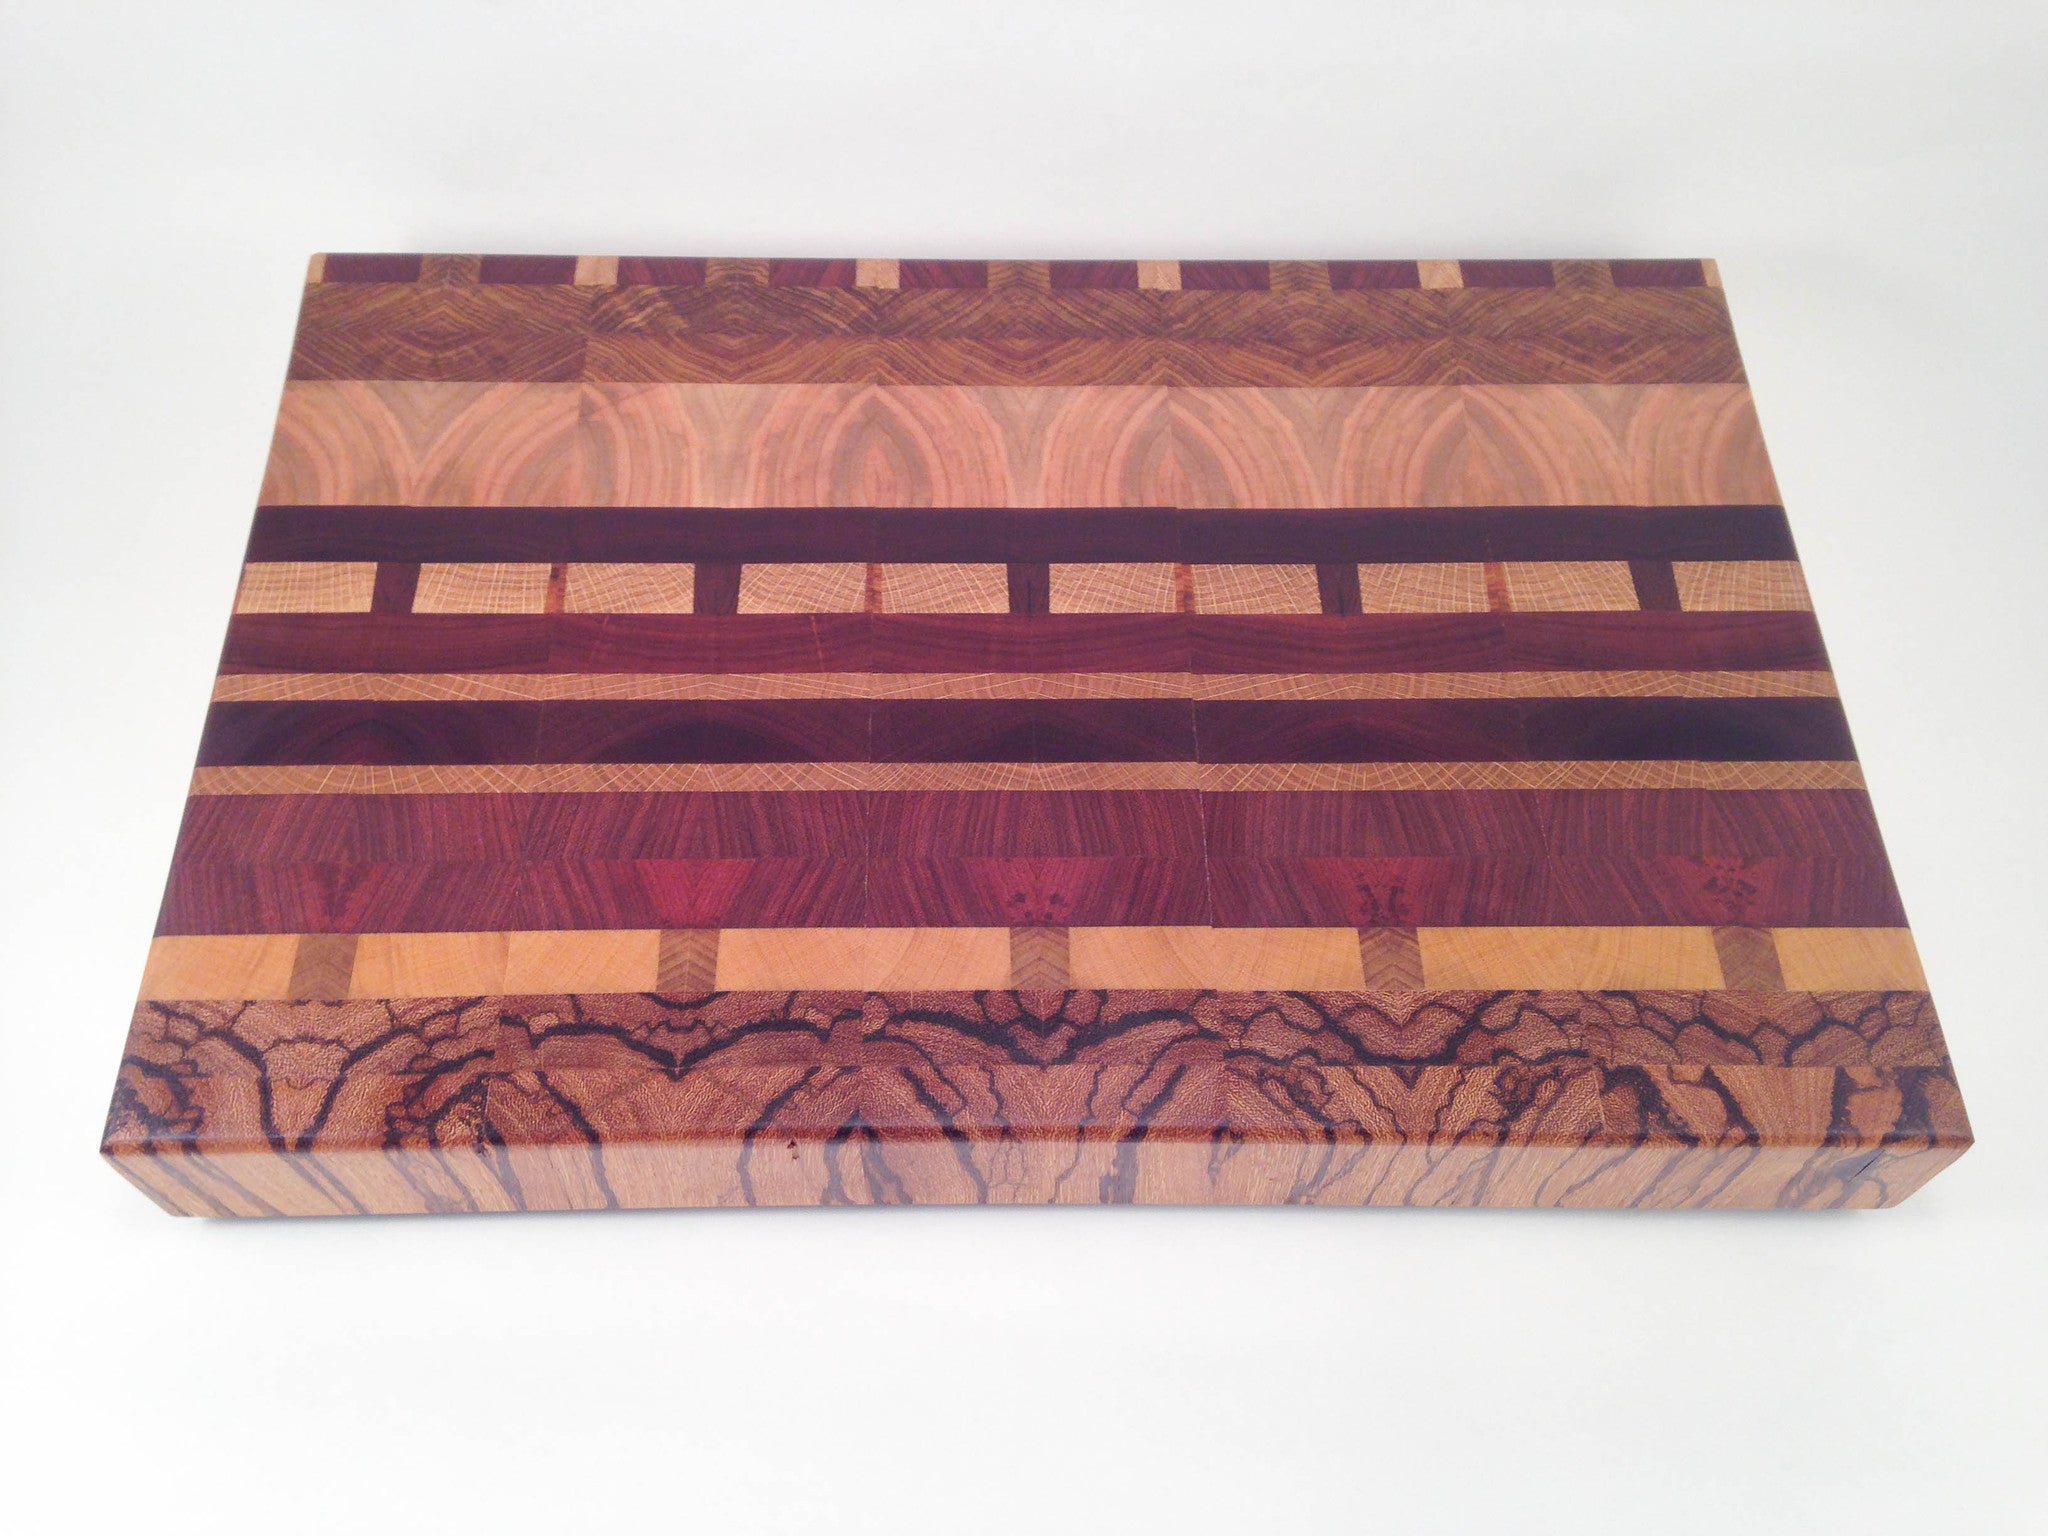 Exotic Cutting Board 002 - No One Alike